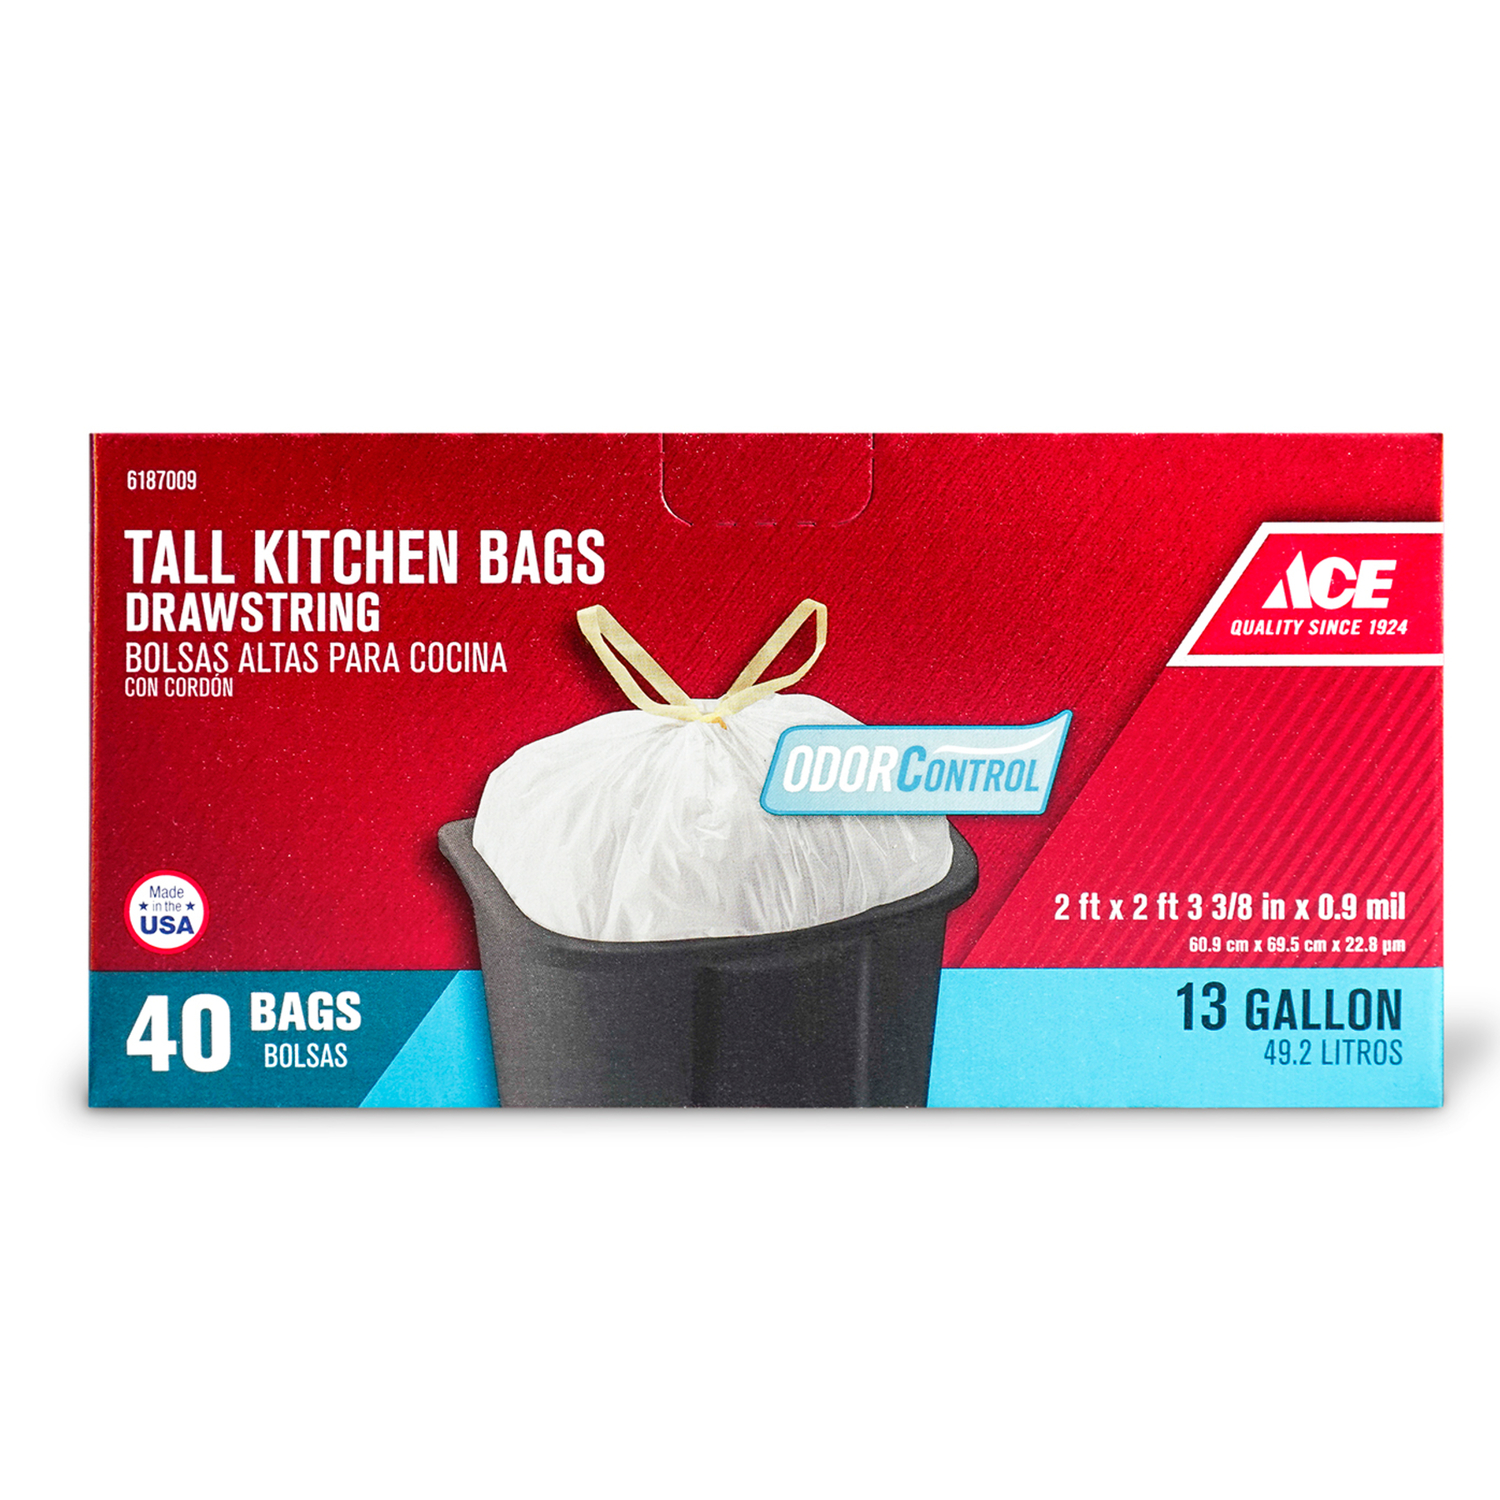 Ace  Odor Control  13 gal. Tall Kitchen Bags  Drawstring  40 pk